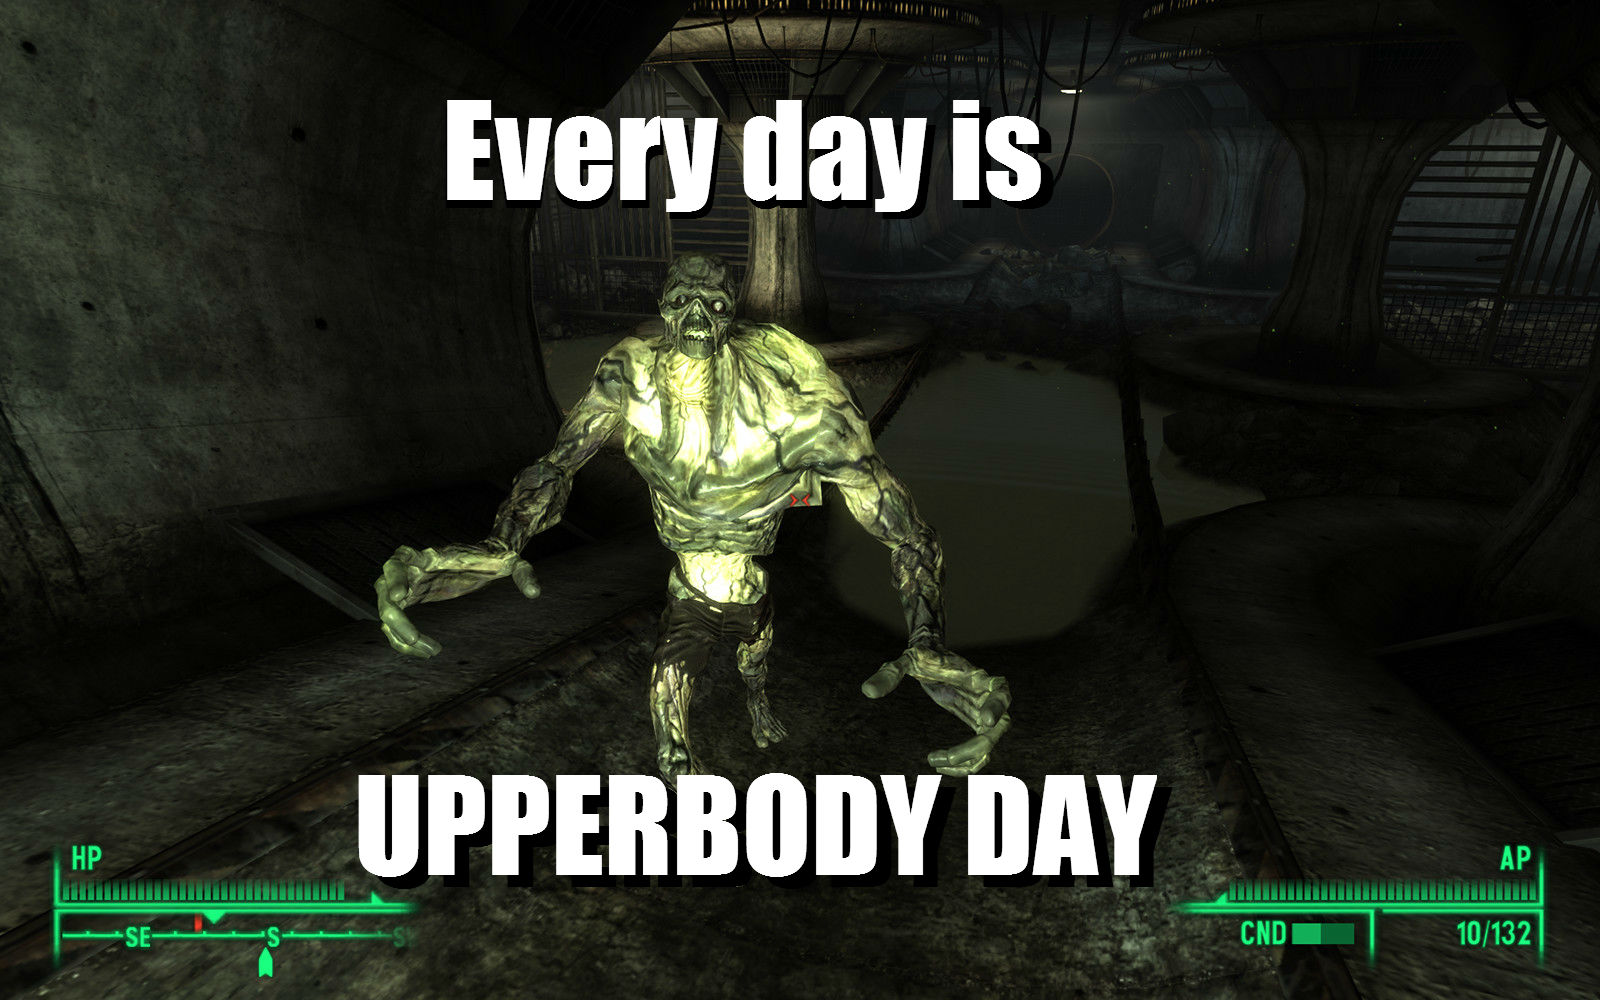 Brace Yourself: The Fallout 4 Memes Are Coming   CharityOwl